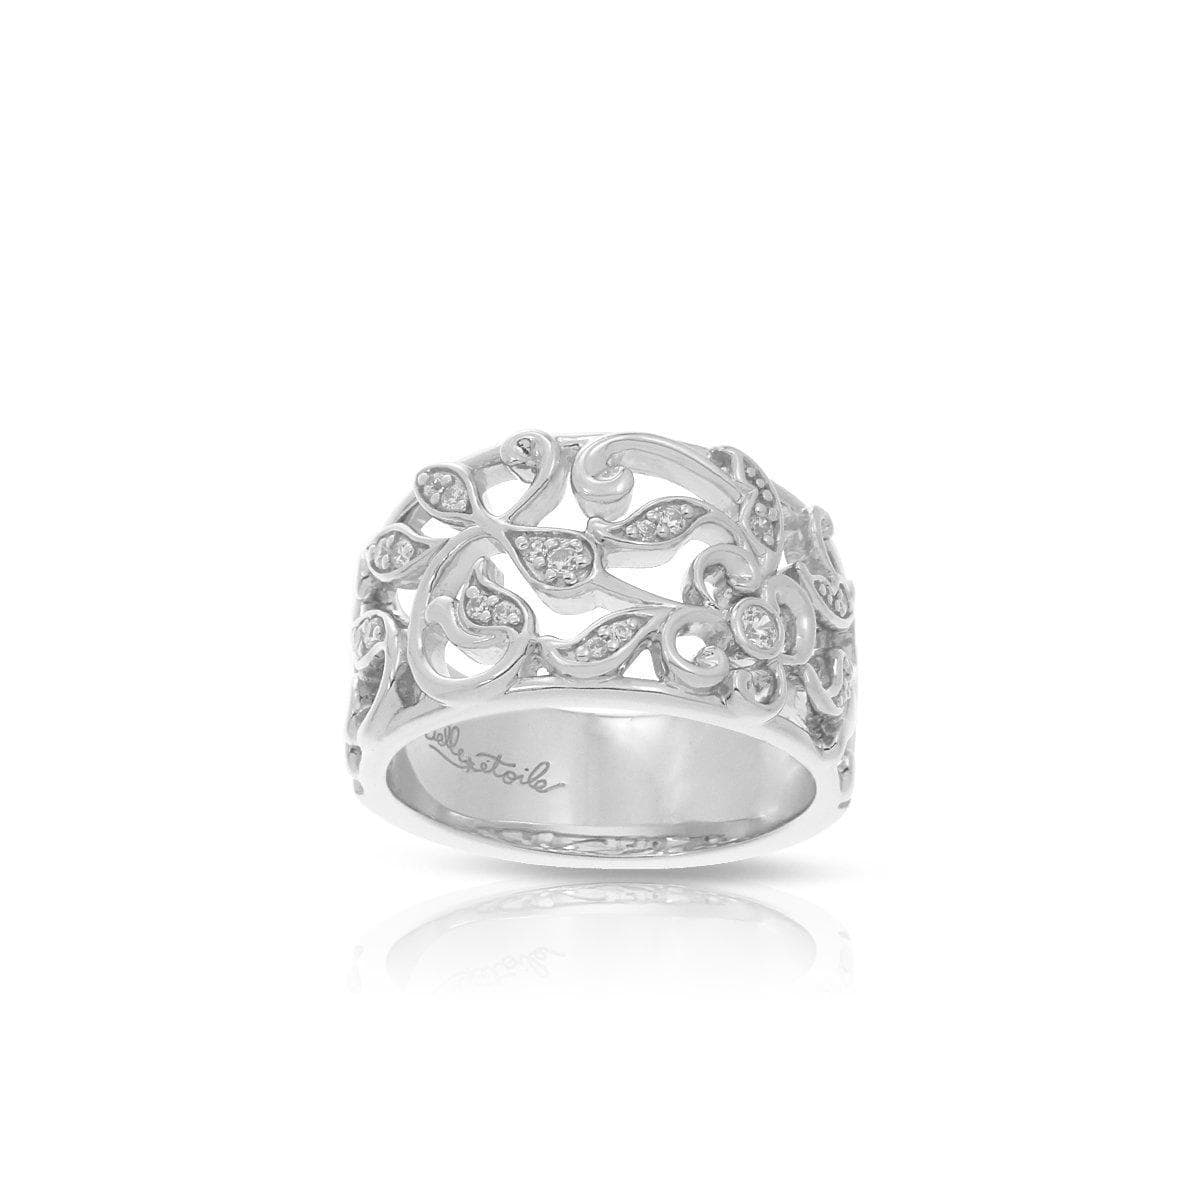 Empress Silver Ring-Belle Etoile-Renee Taylor Gallery